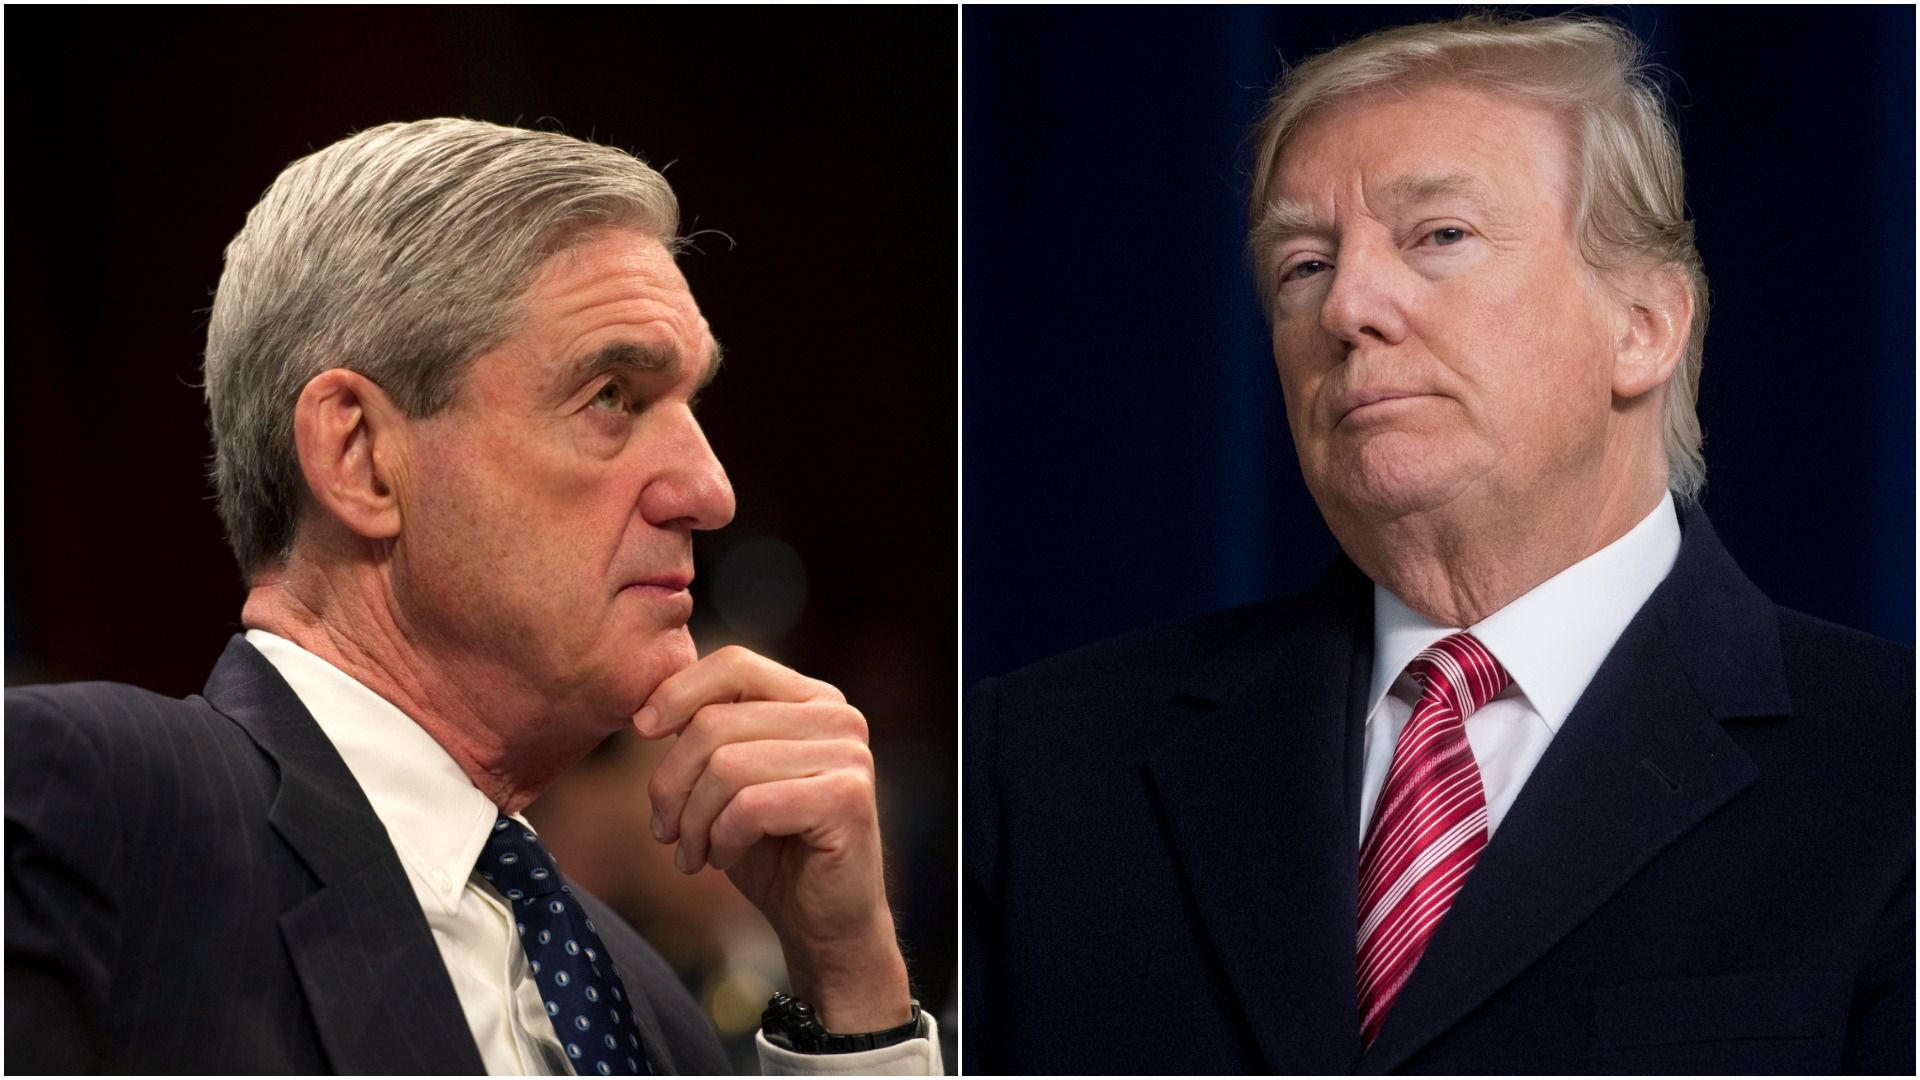 A split image of Robert Mueller and President Trump